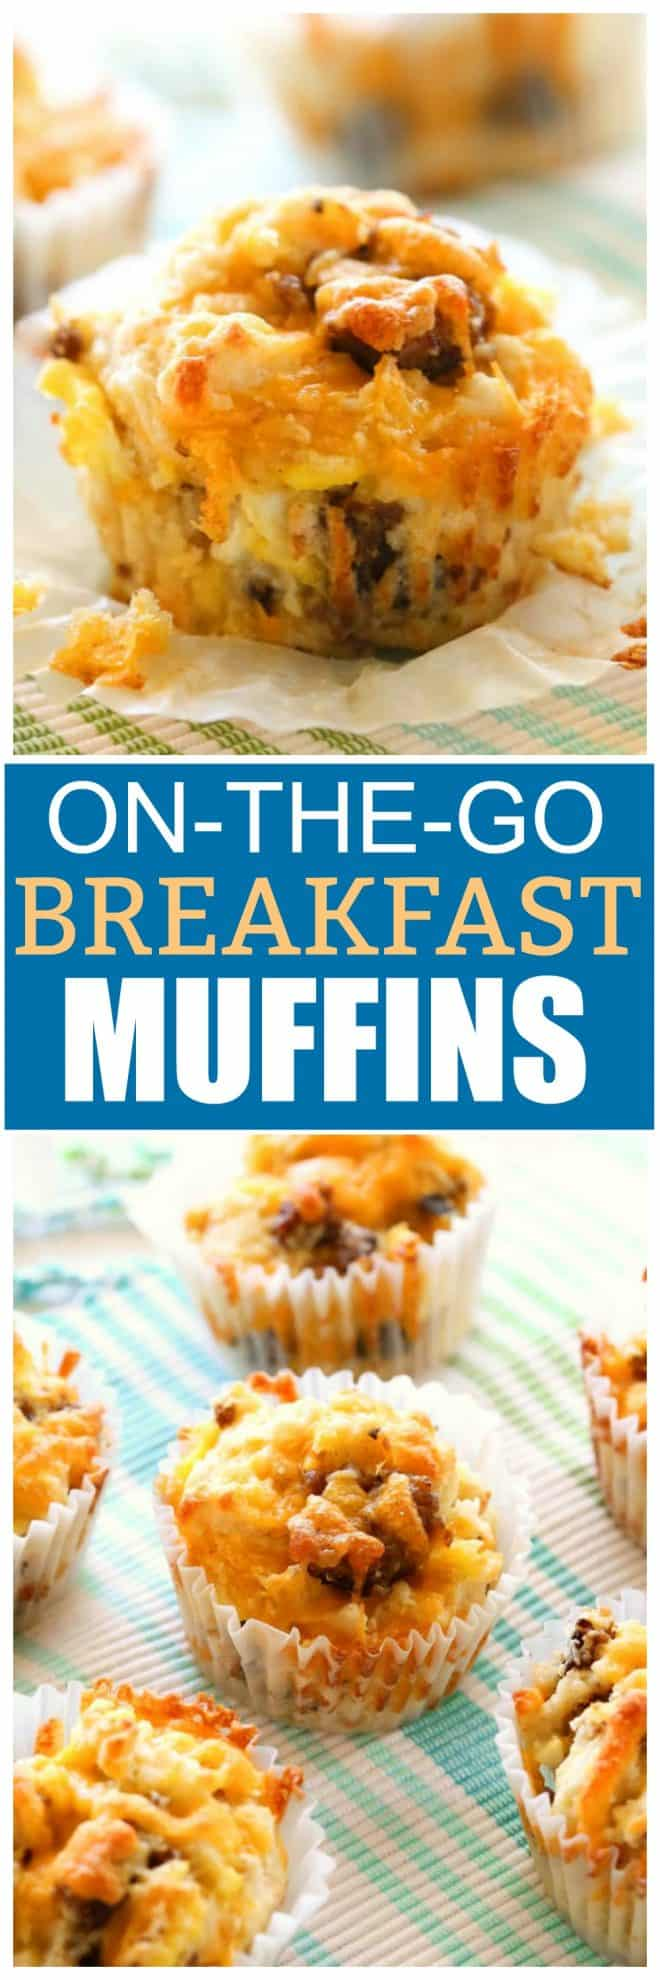 On-the-go Breakfast Muffins